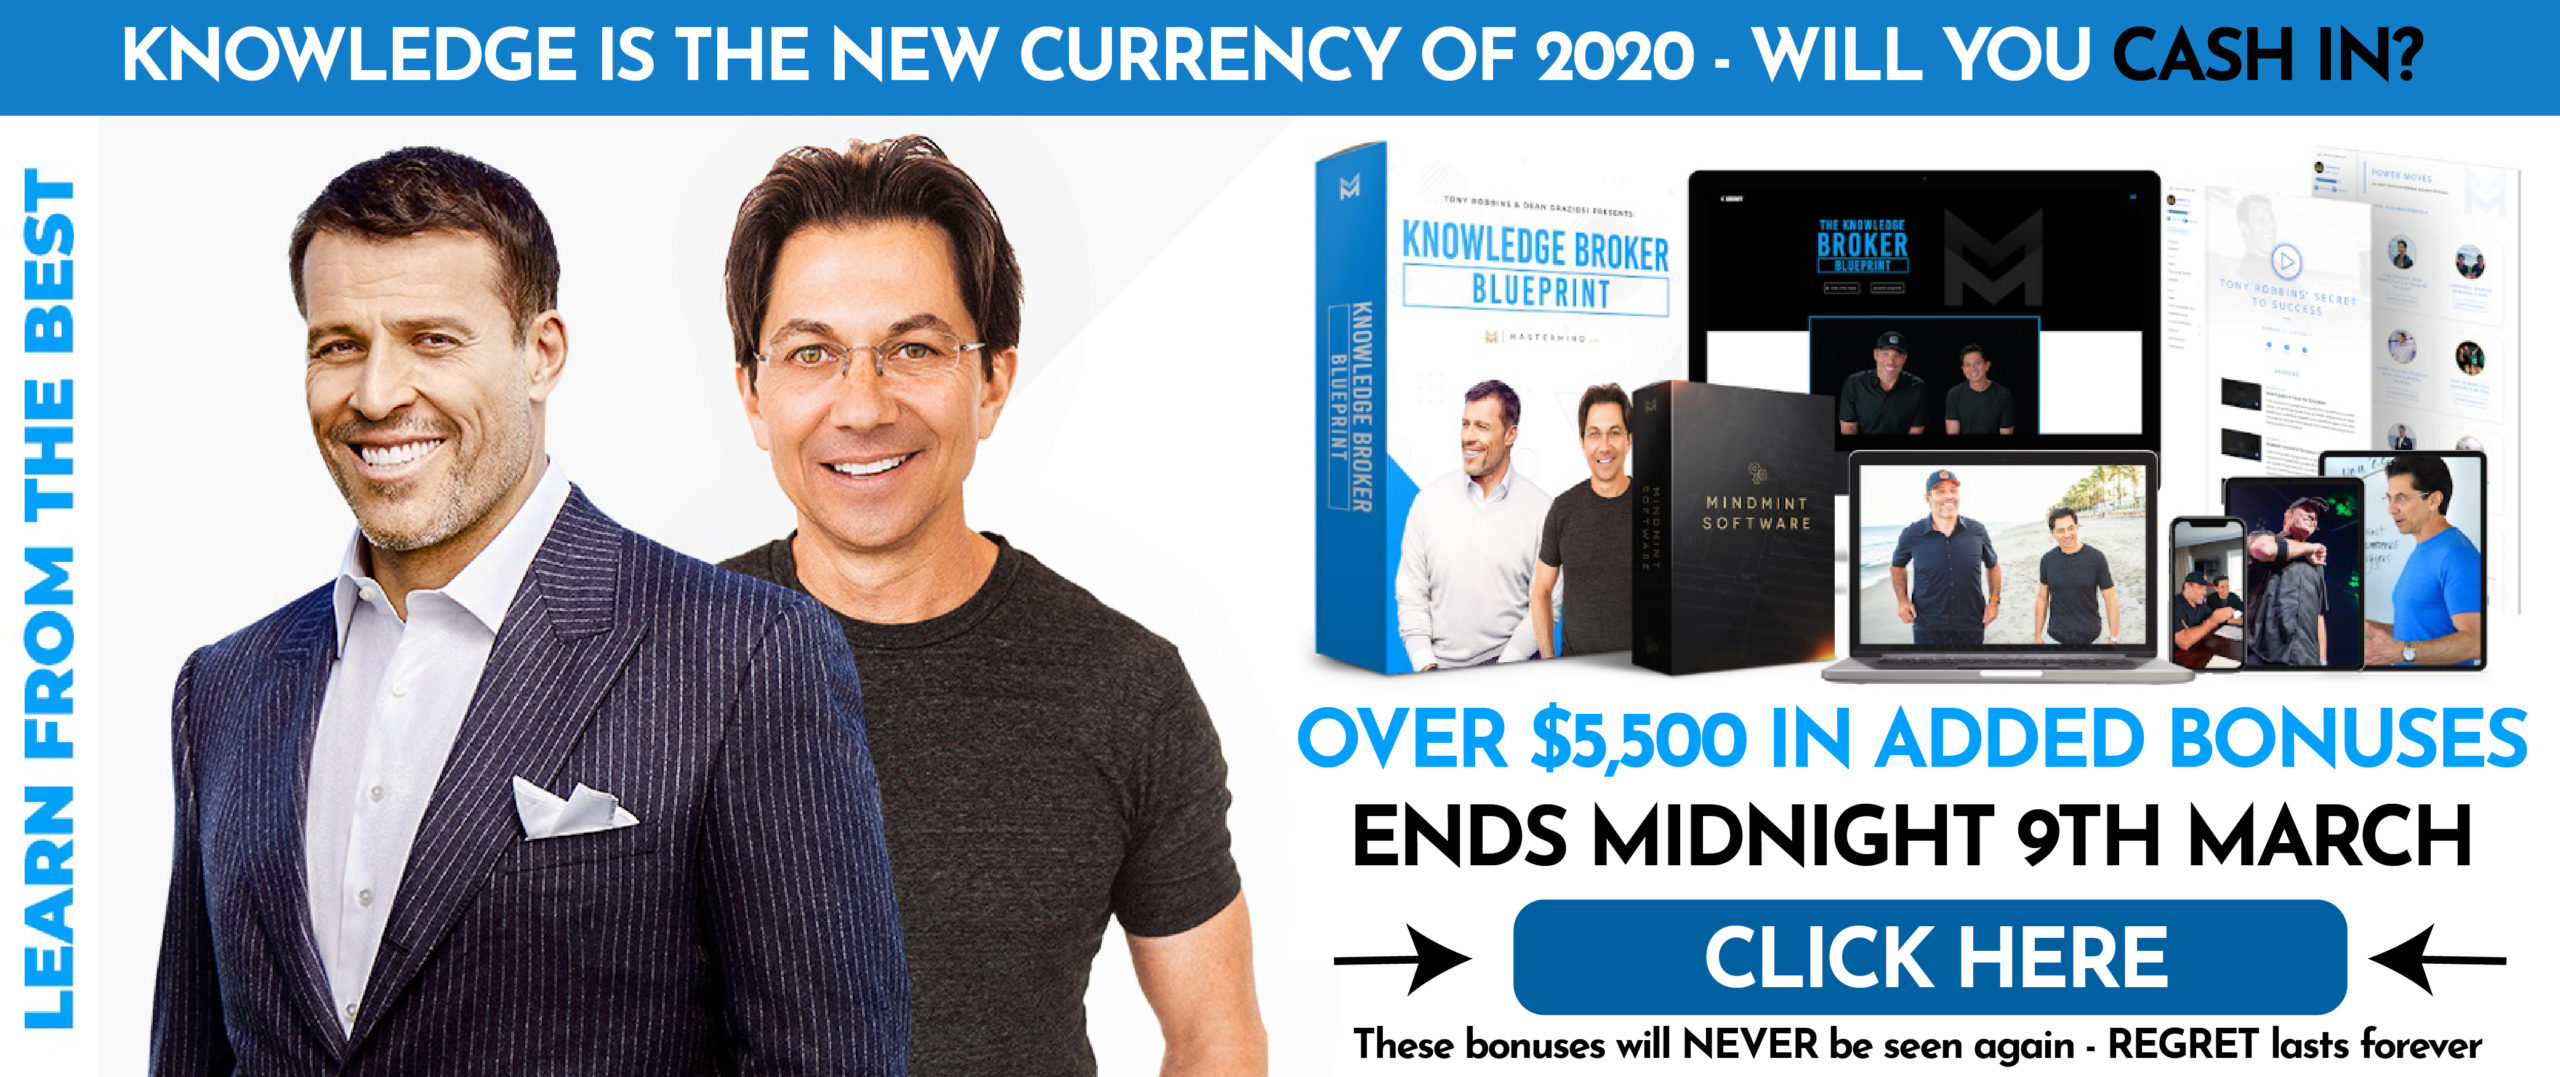 Knowledge Business Blueprint Reservation Tony Robins And Dean Graziosi Closing Midnight Sale